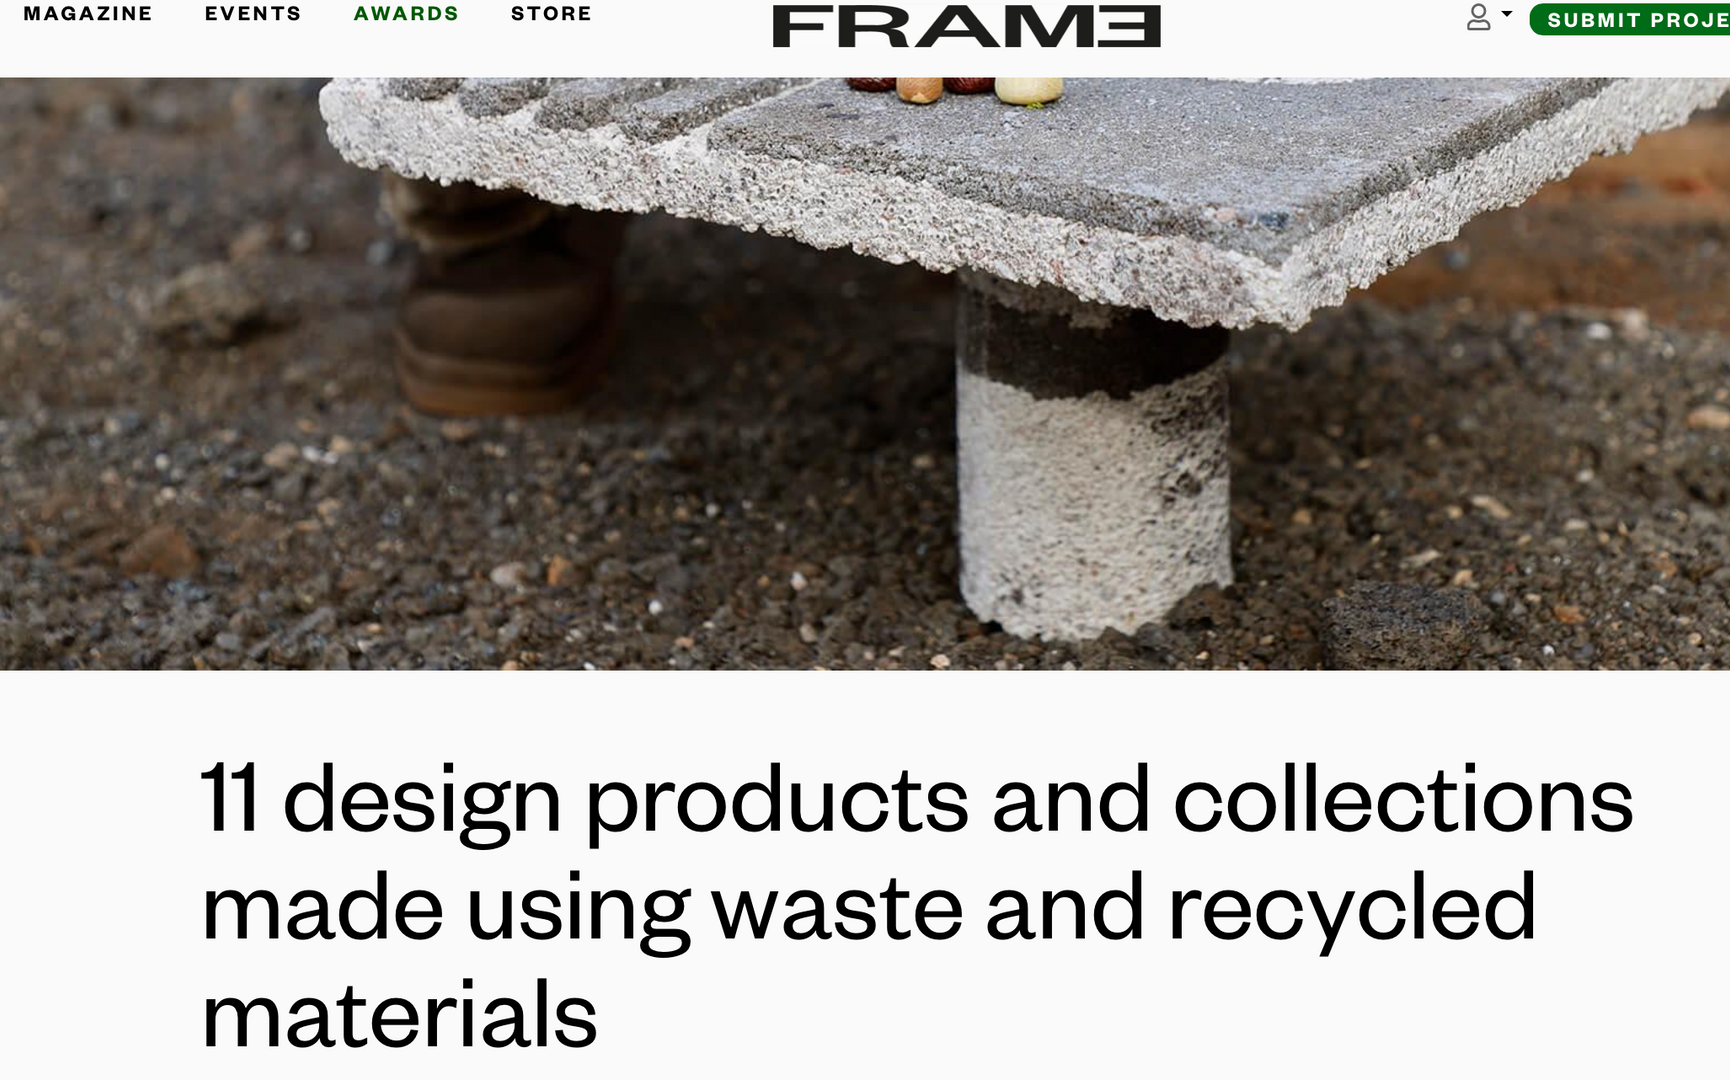 11 desgin products and collections made using waste and recycled materials - FRAME